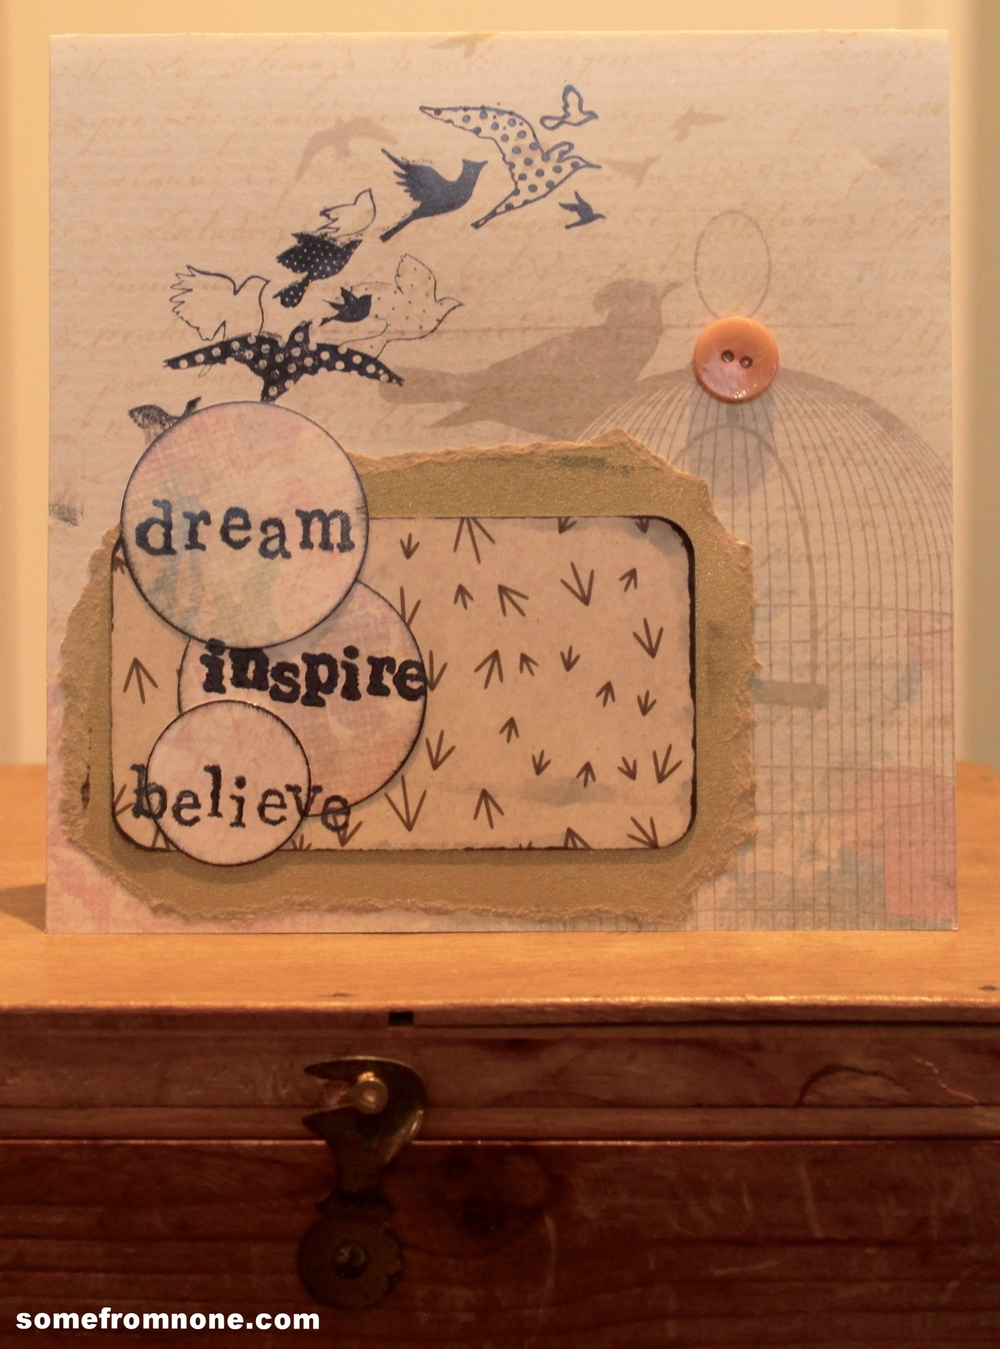 Dream, Inspire, Believe